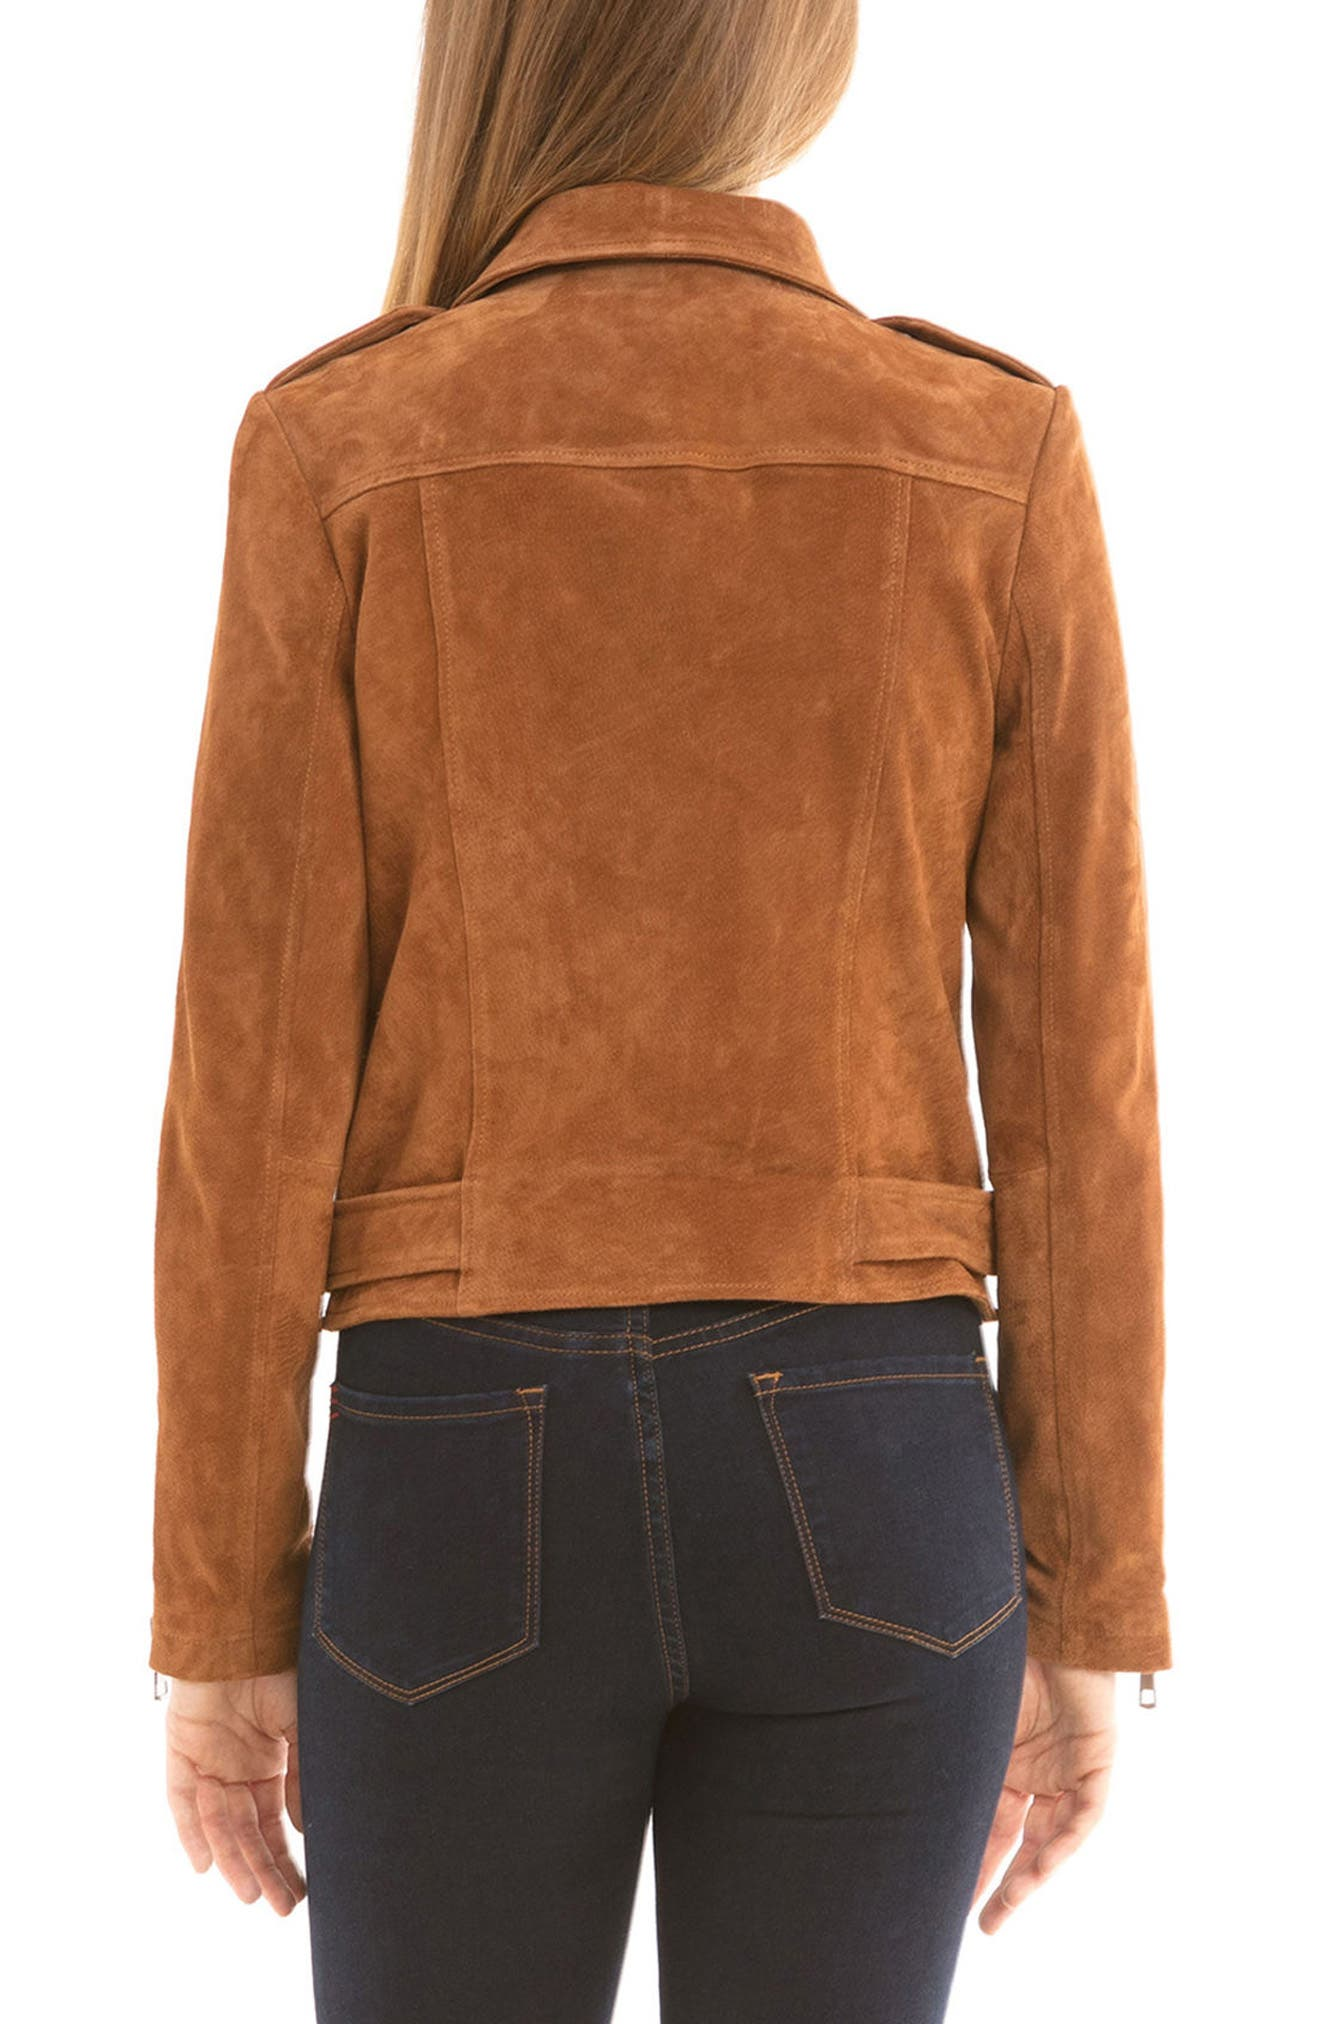 NYC  Suede Jacket,                             Alternate thumbnail 2, color,                             200